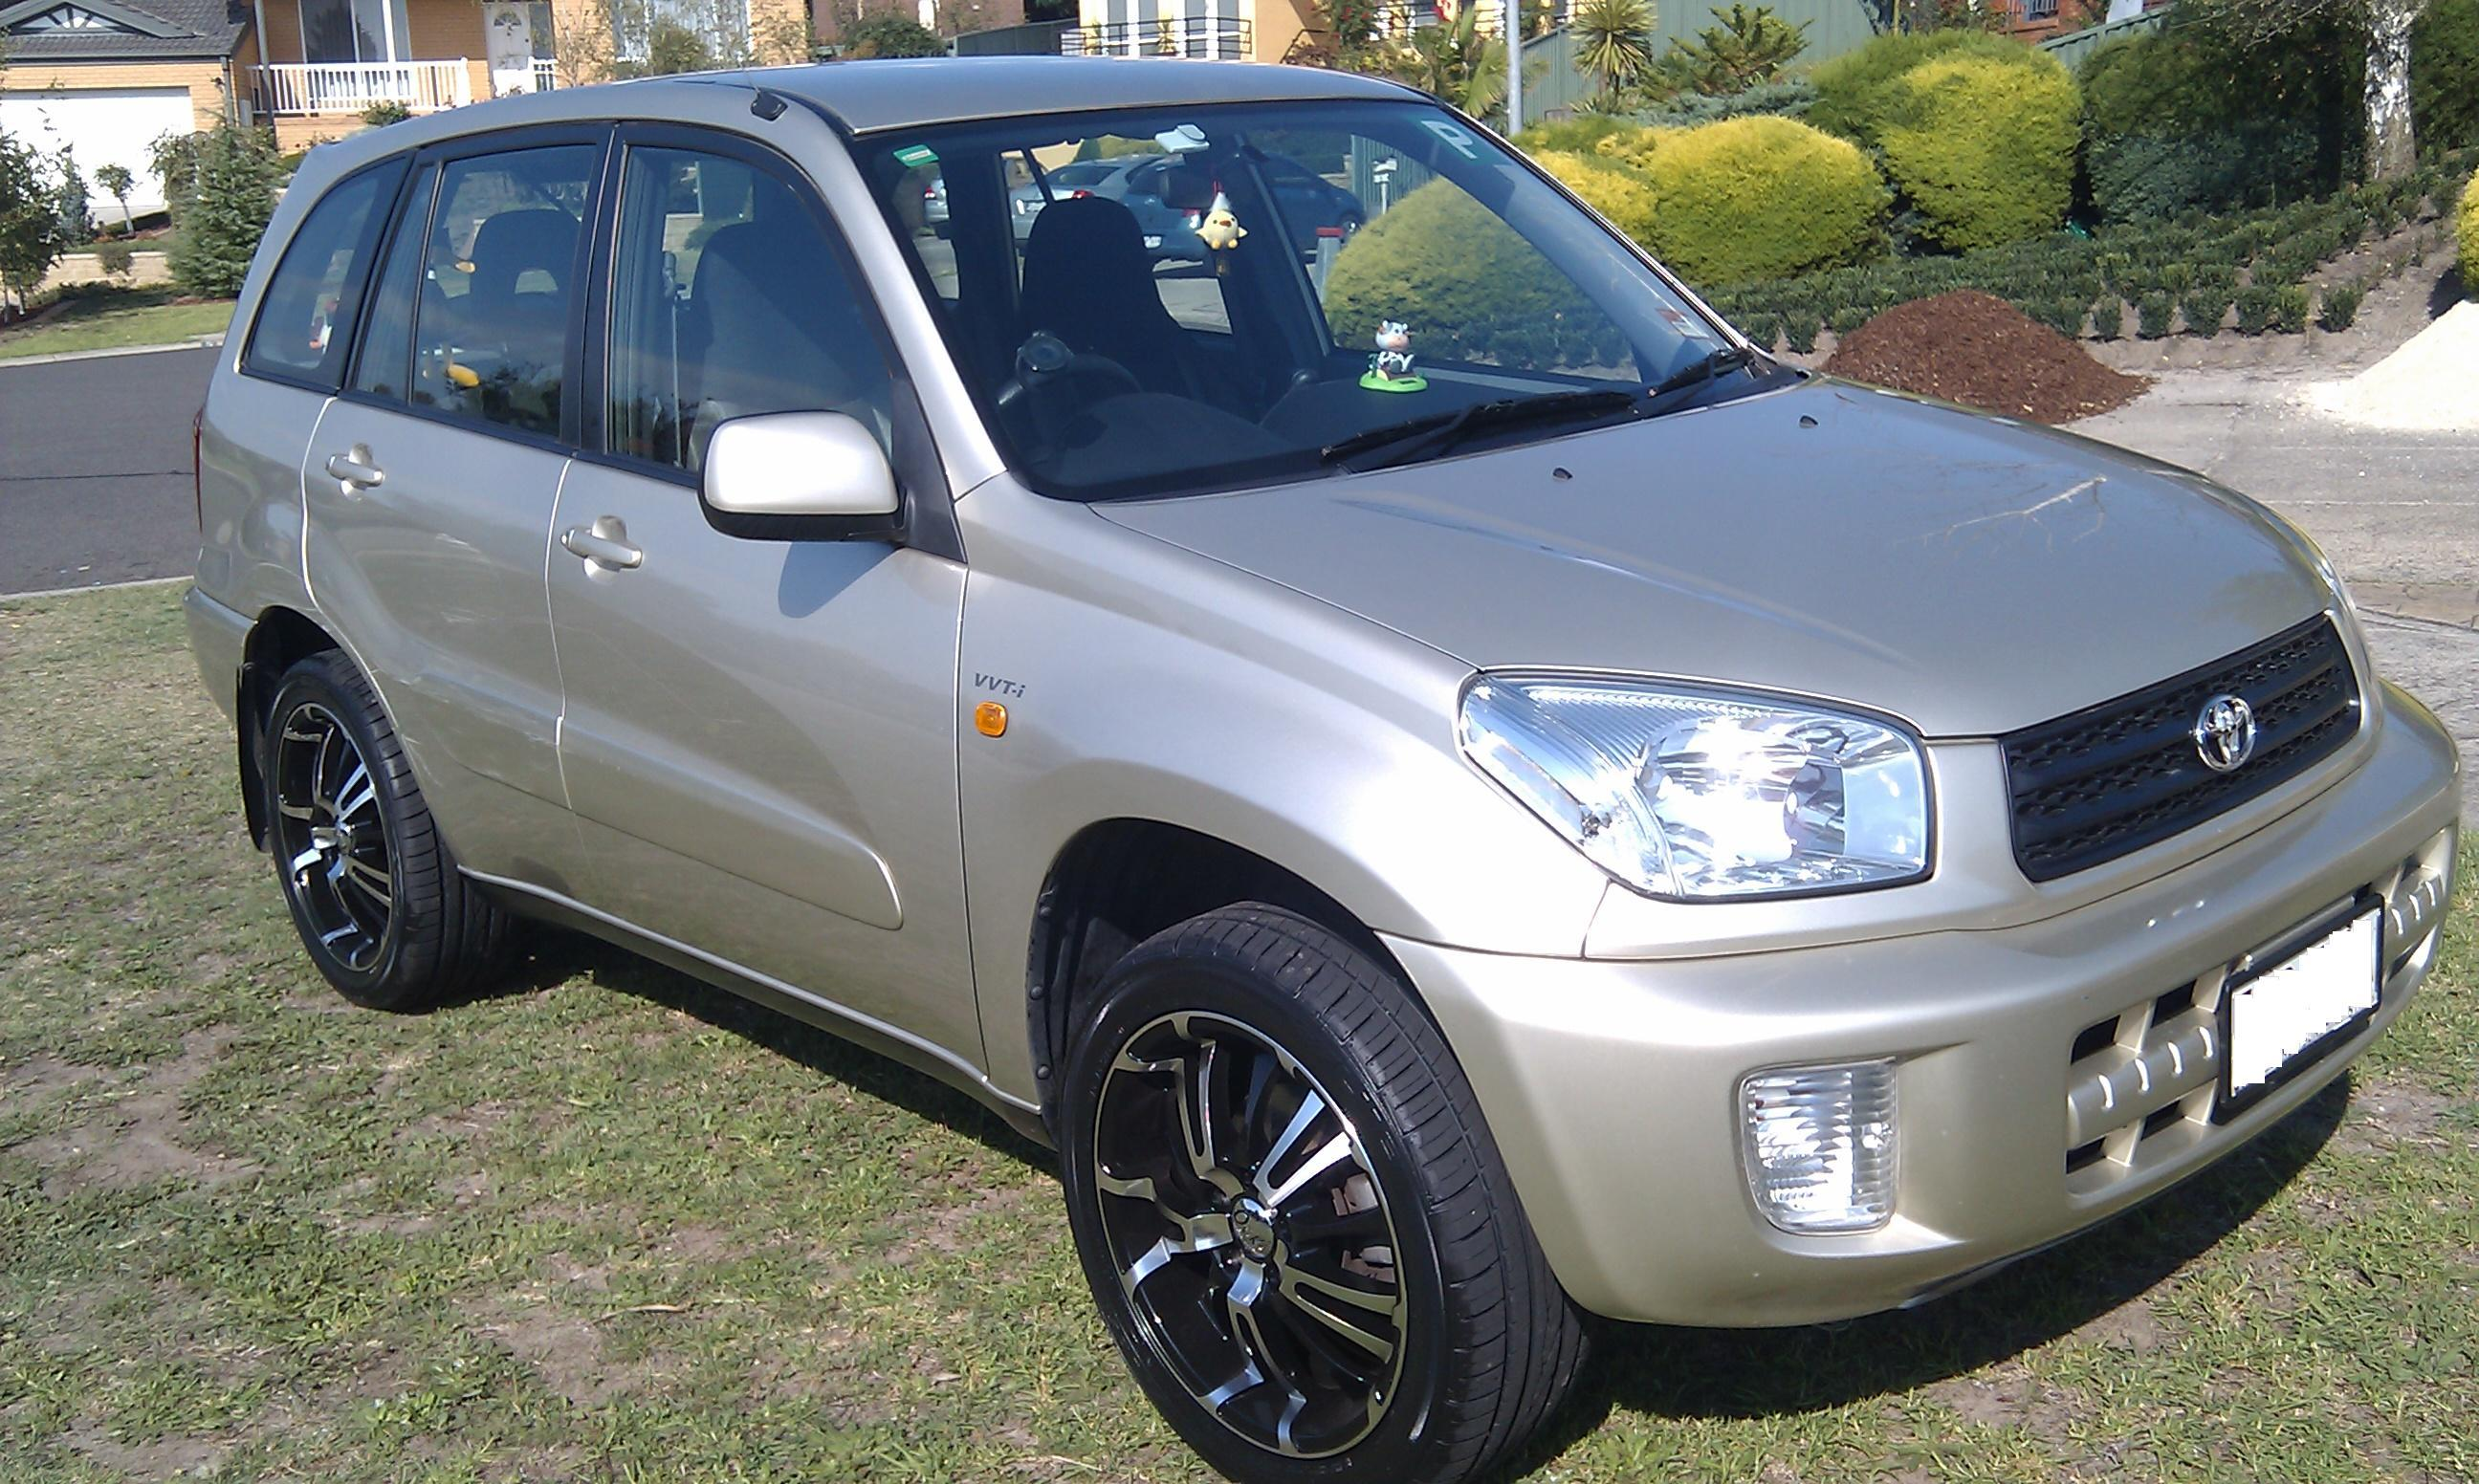 toyota rav4 2003 car - photo #22